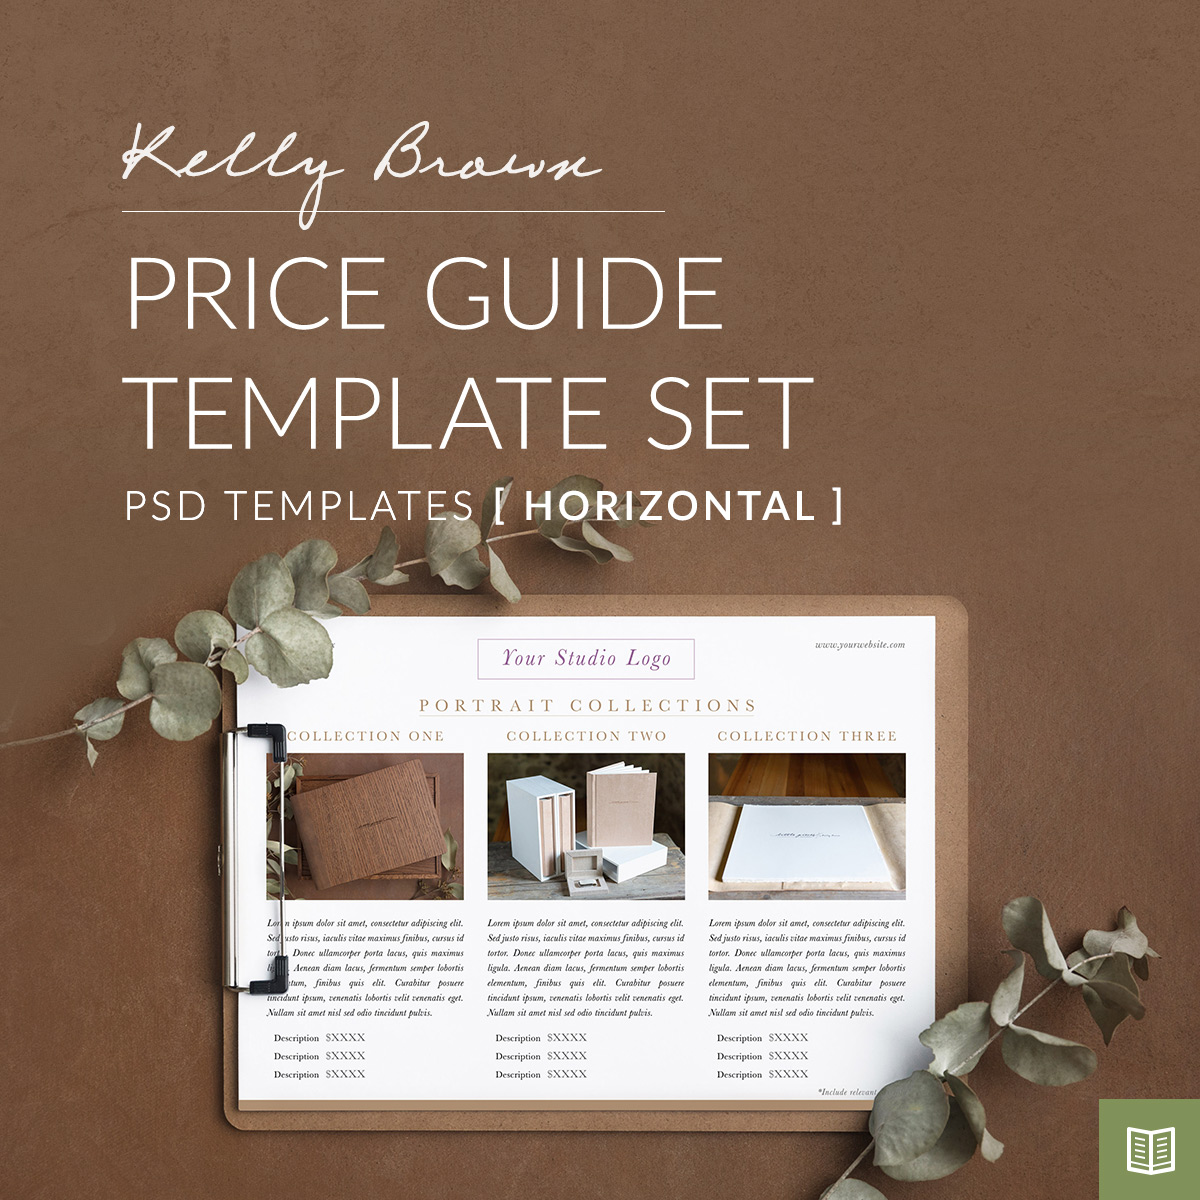 Price guide template Photoshop - kelly brown newborn posing